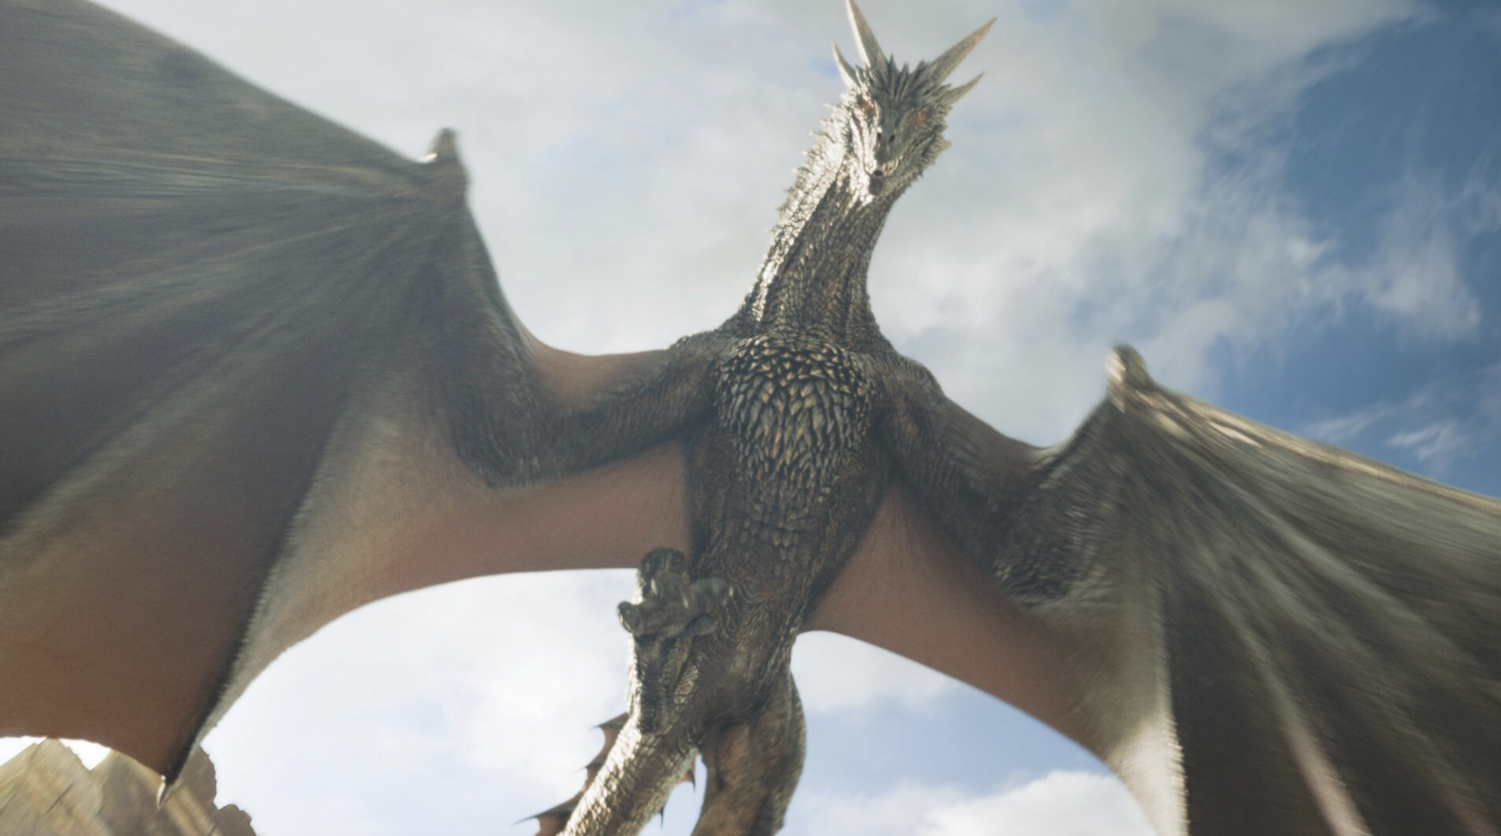 Dragon from Game of Thrones